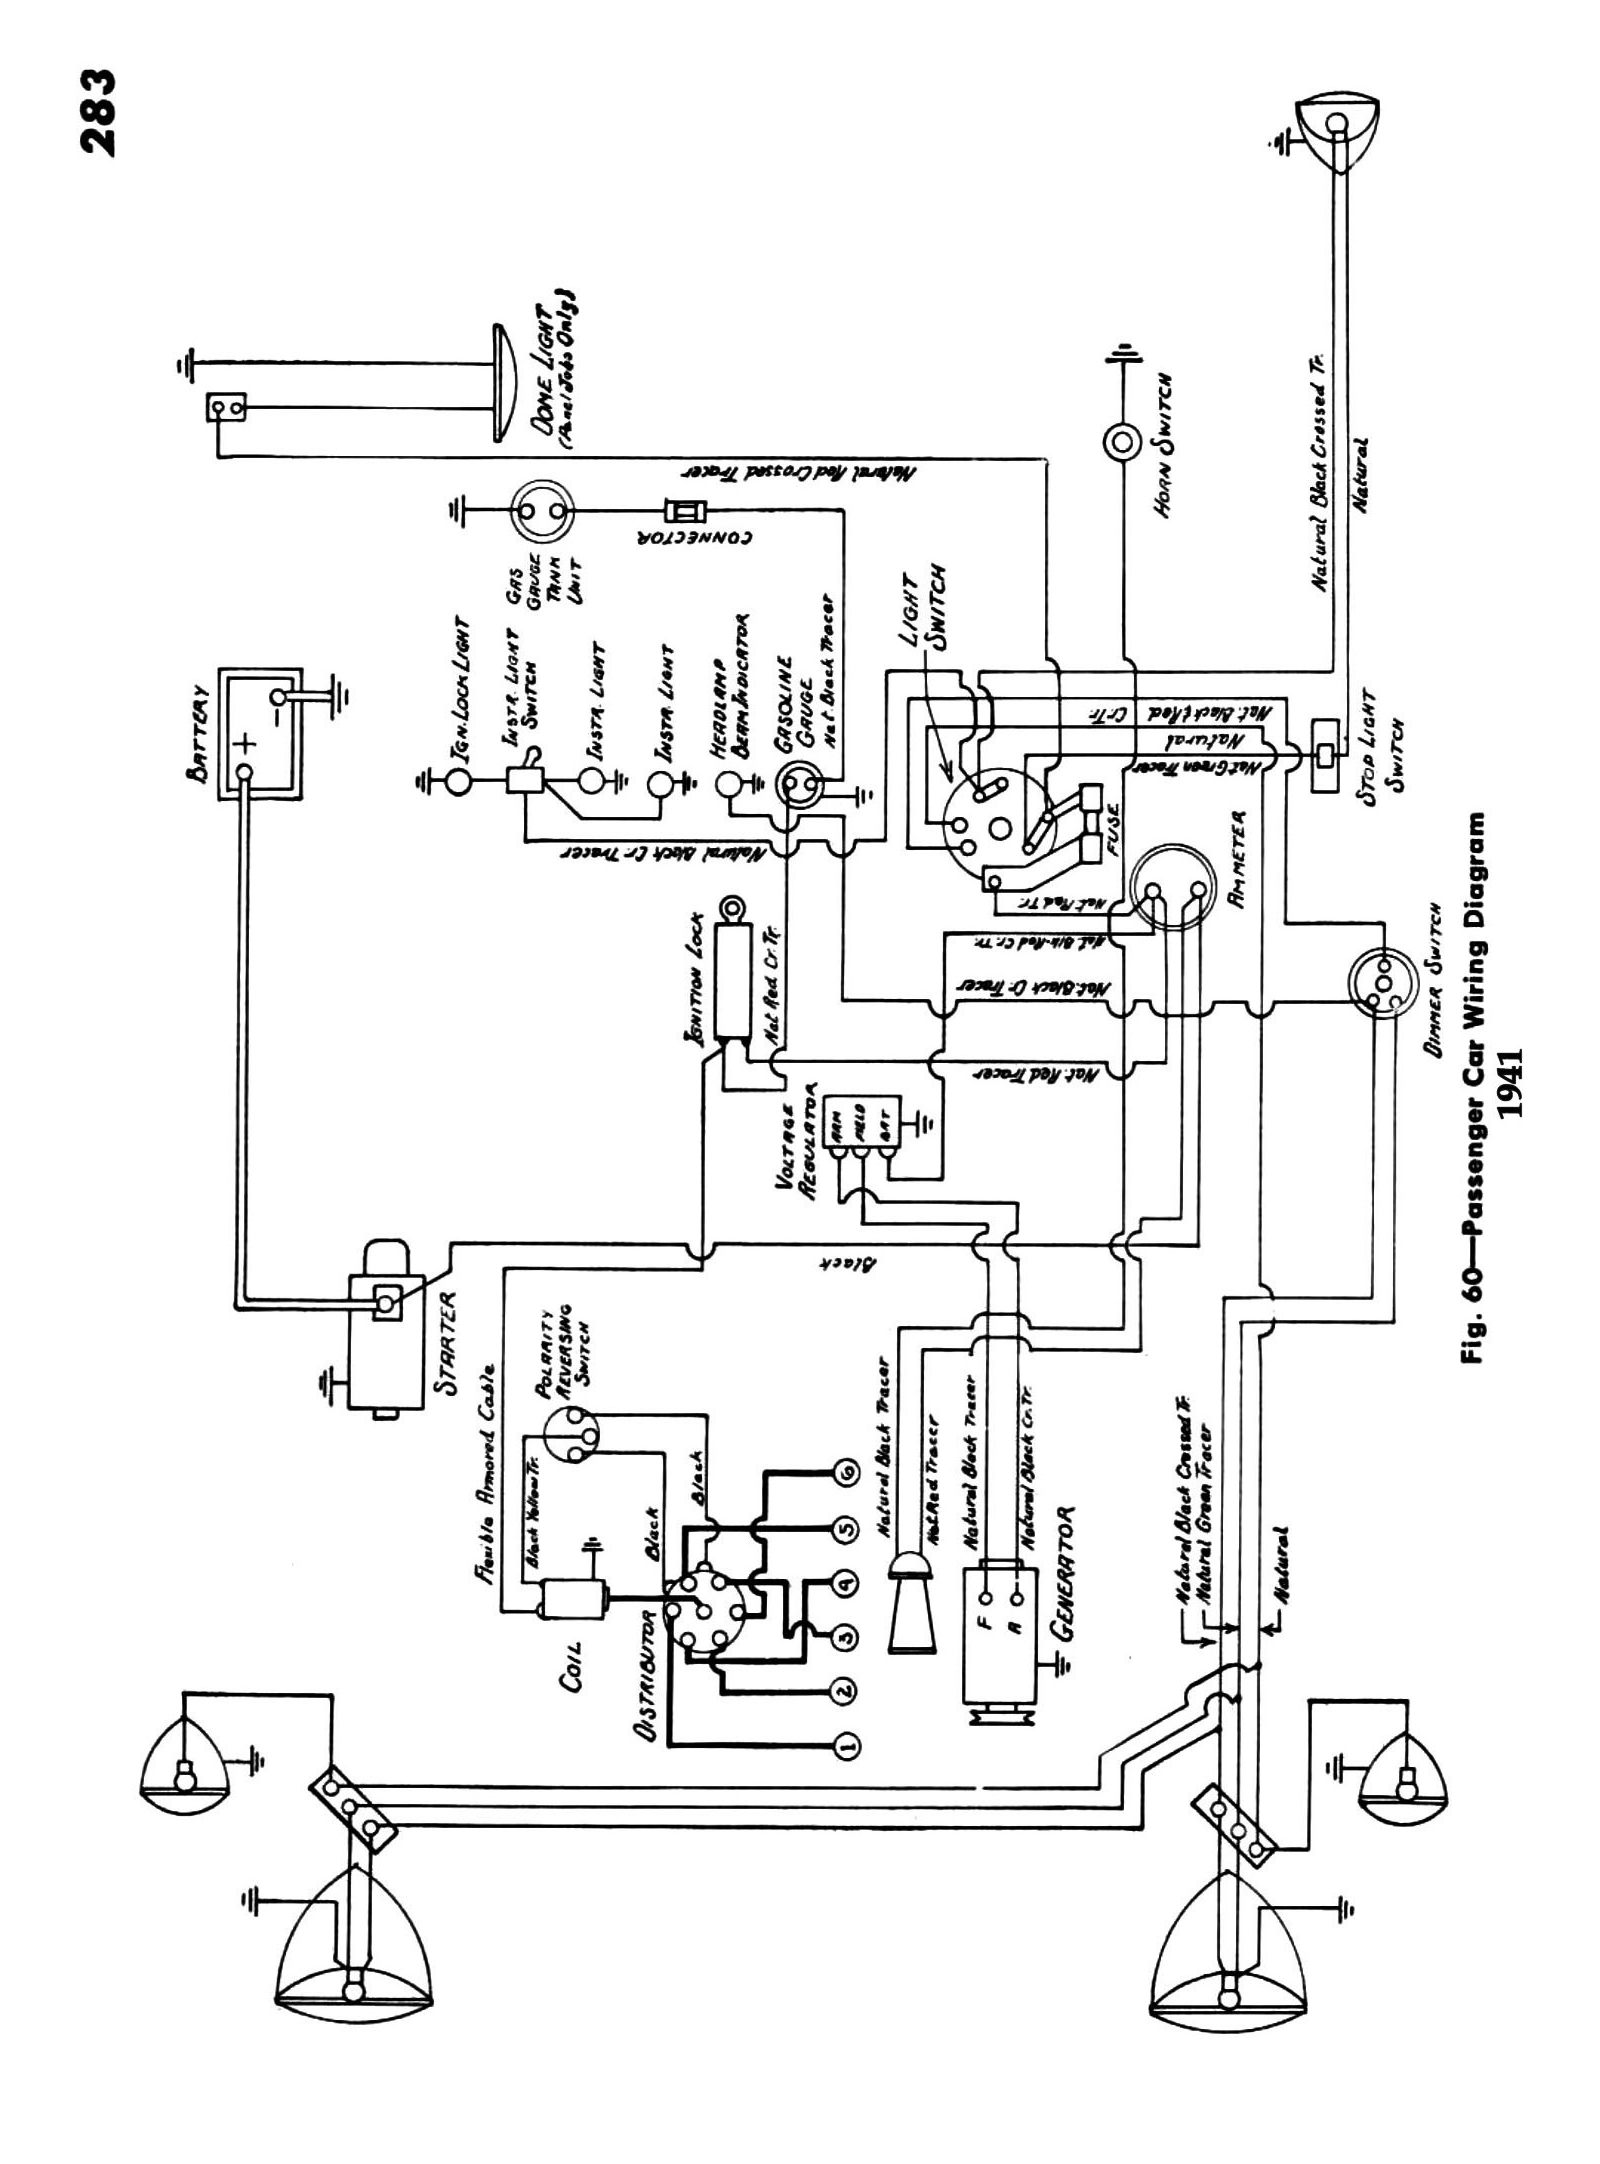 chevy wiring diagrams 1941 1941 car wiring · 1941 passenger car wiring